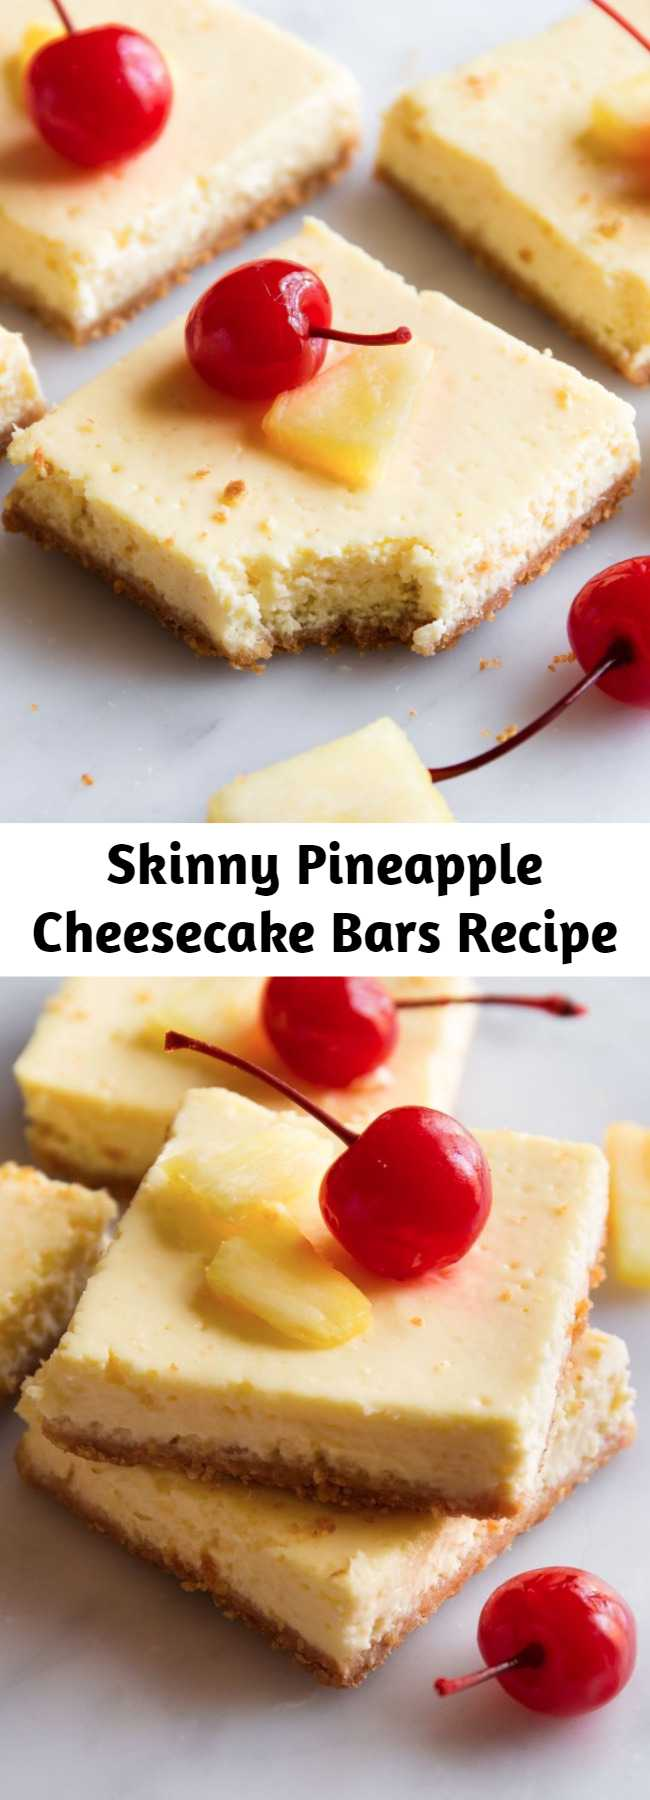 Skinny Pineapple Cheesecake Bars Recipe - The best news we've heard so far this year is that these bars are only 130 calories. Transport yourself to the tropics with these lightened-up cheesecake bars.